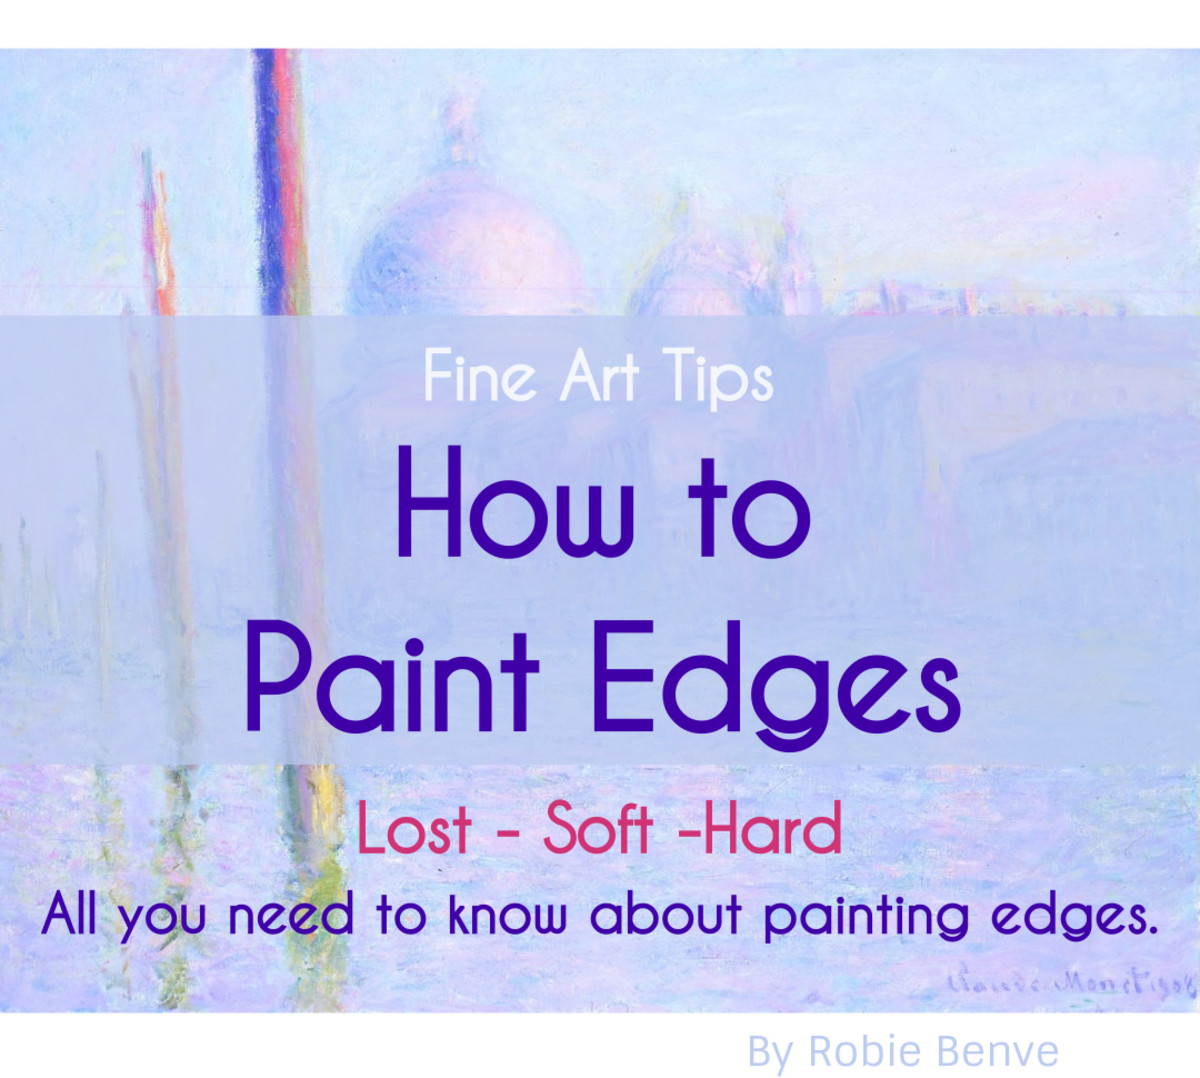 Everything a painter needs to know to paint edges in a descriptive way and create good transitions between shapes that guide the eye of the viewer through the picture plane.